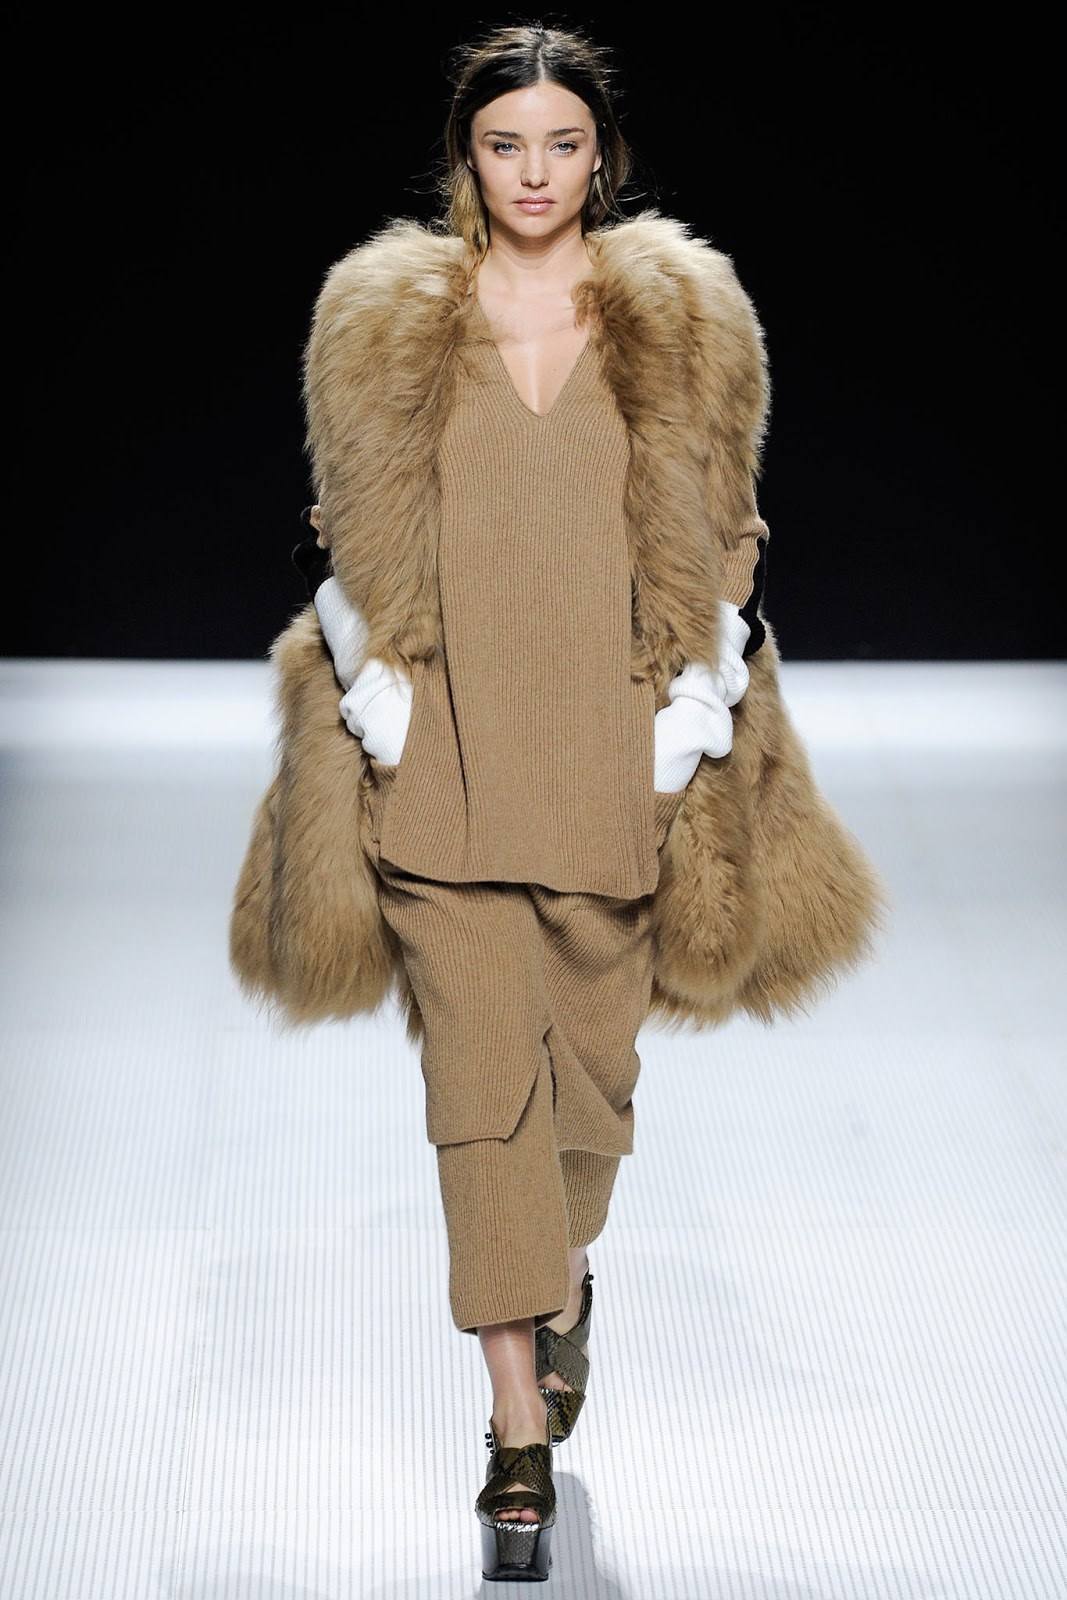 Sonia Rykiel Fall/Winter 2014